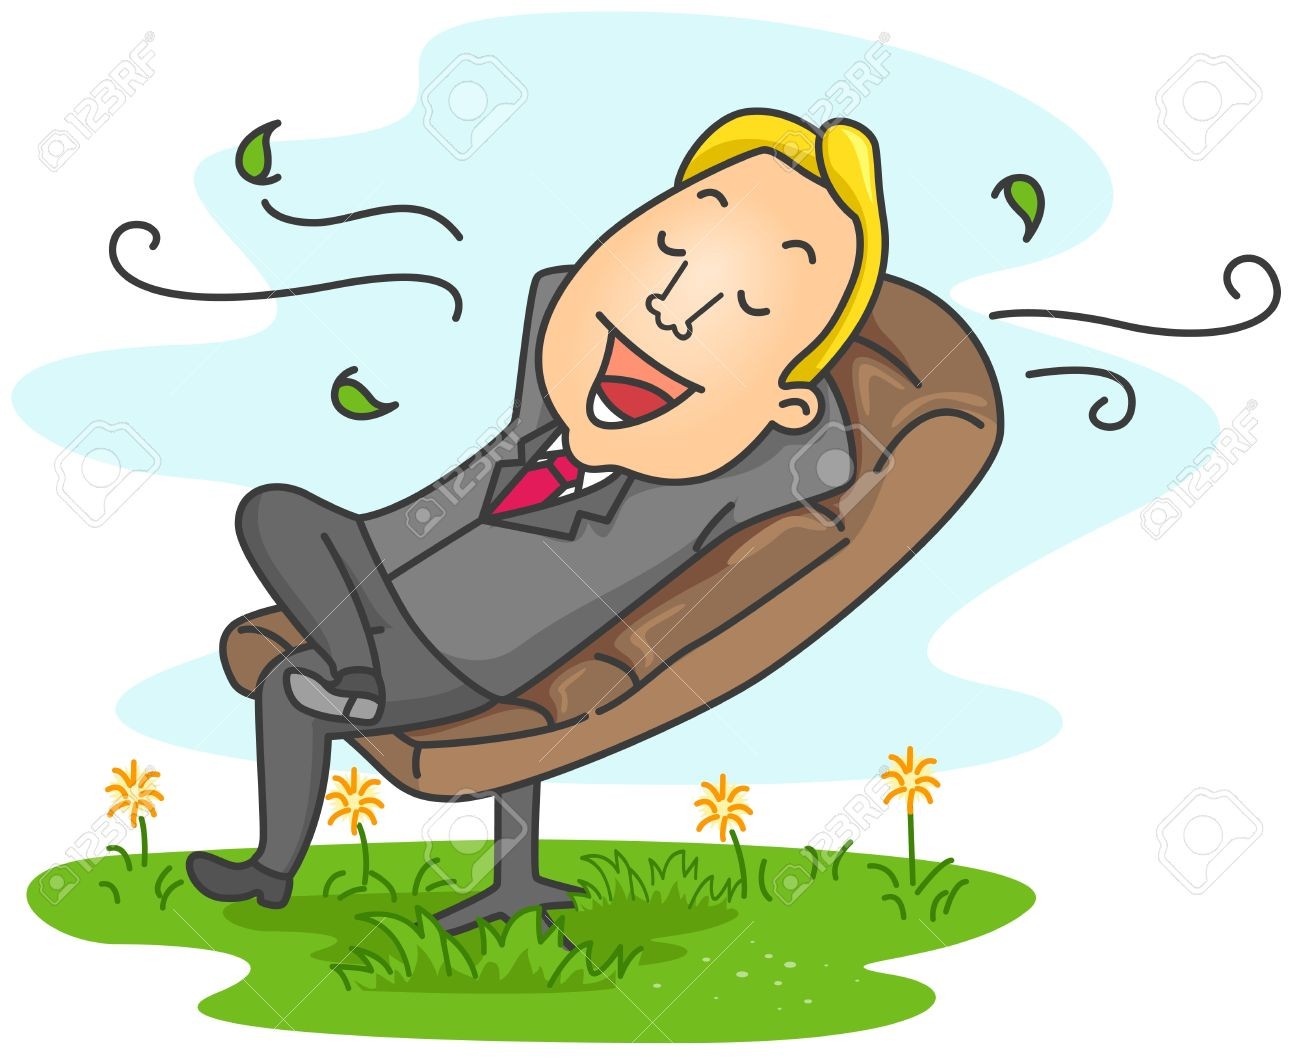 Relaxed clipart - Clipground